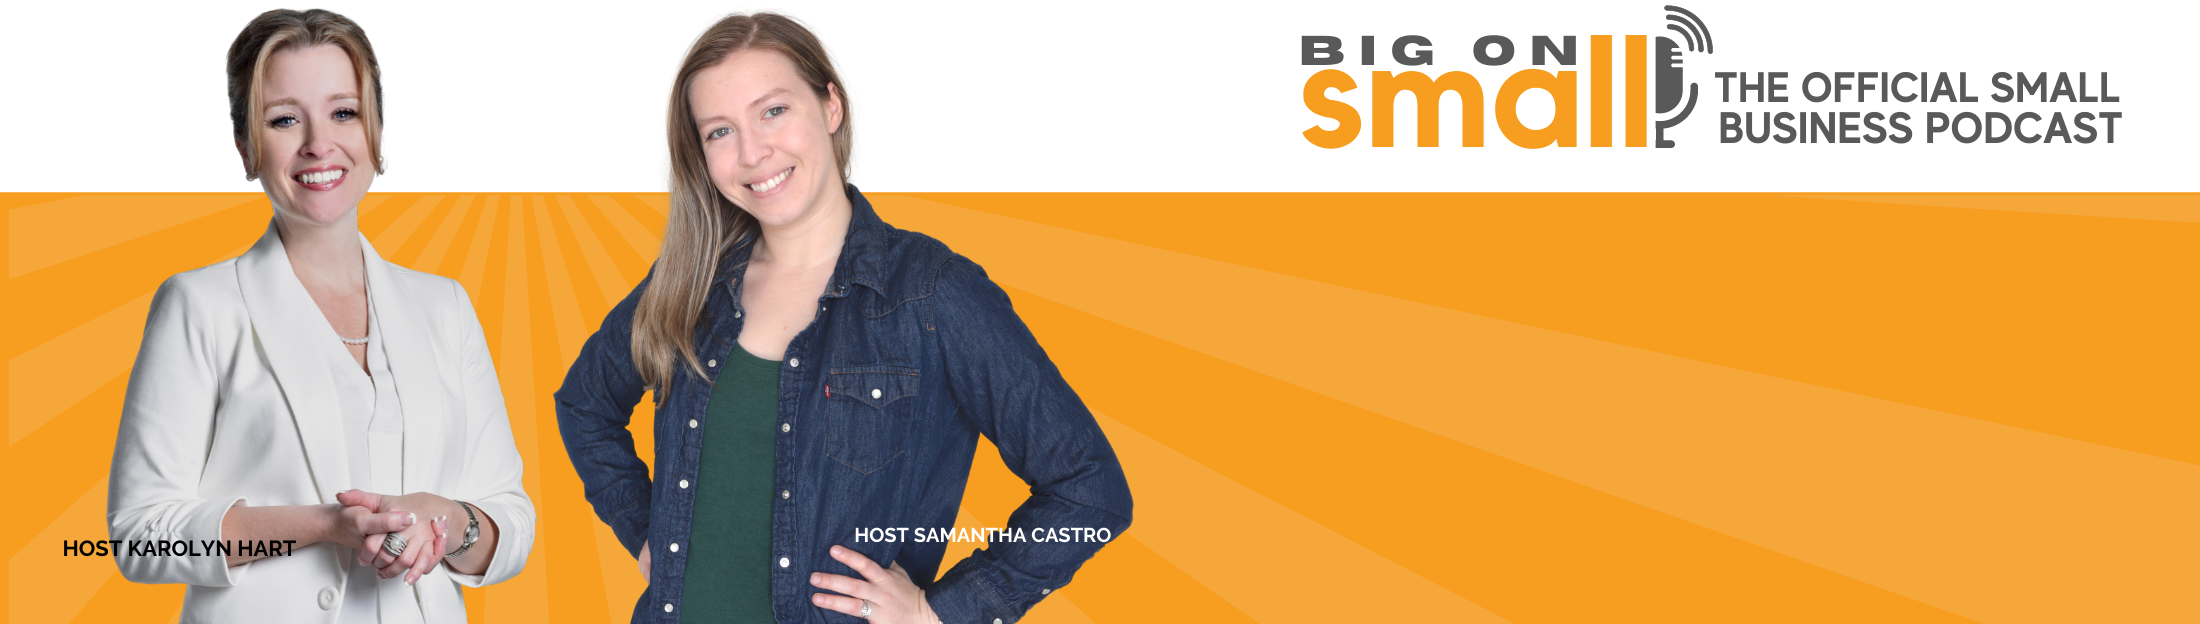 Big on Small Podcast Image